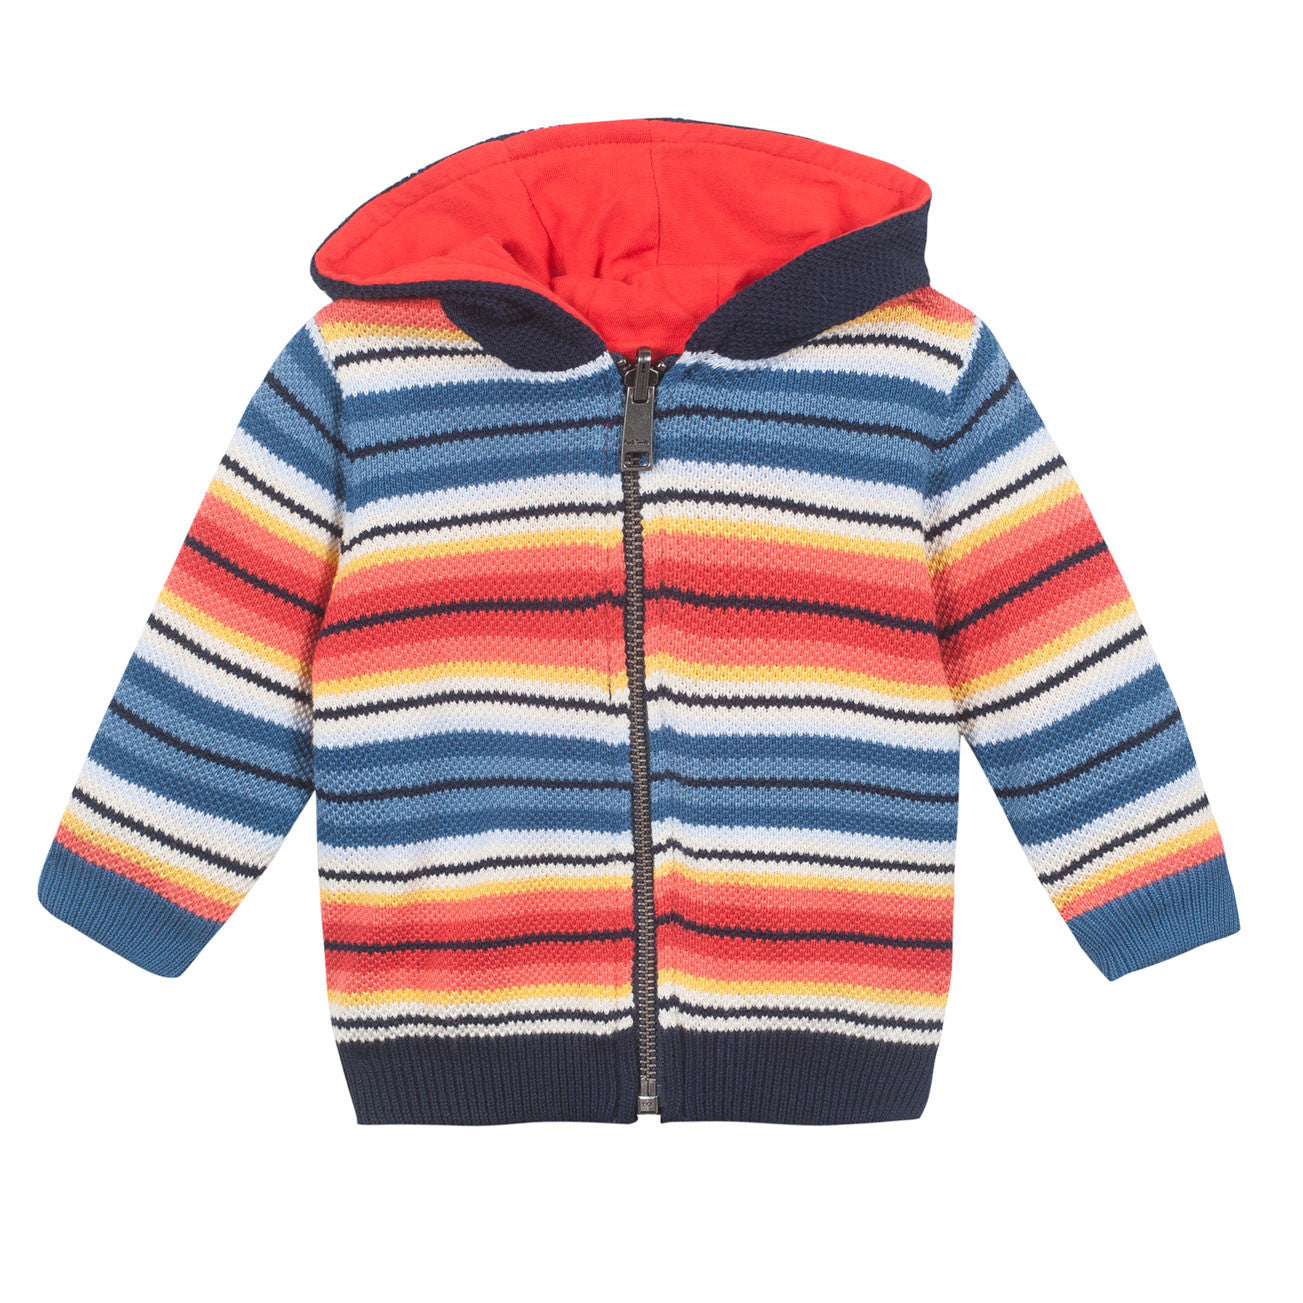 Paul Smith Baby Striped Sweate - Ladida